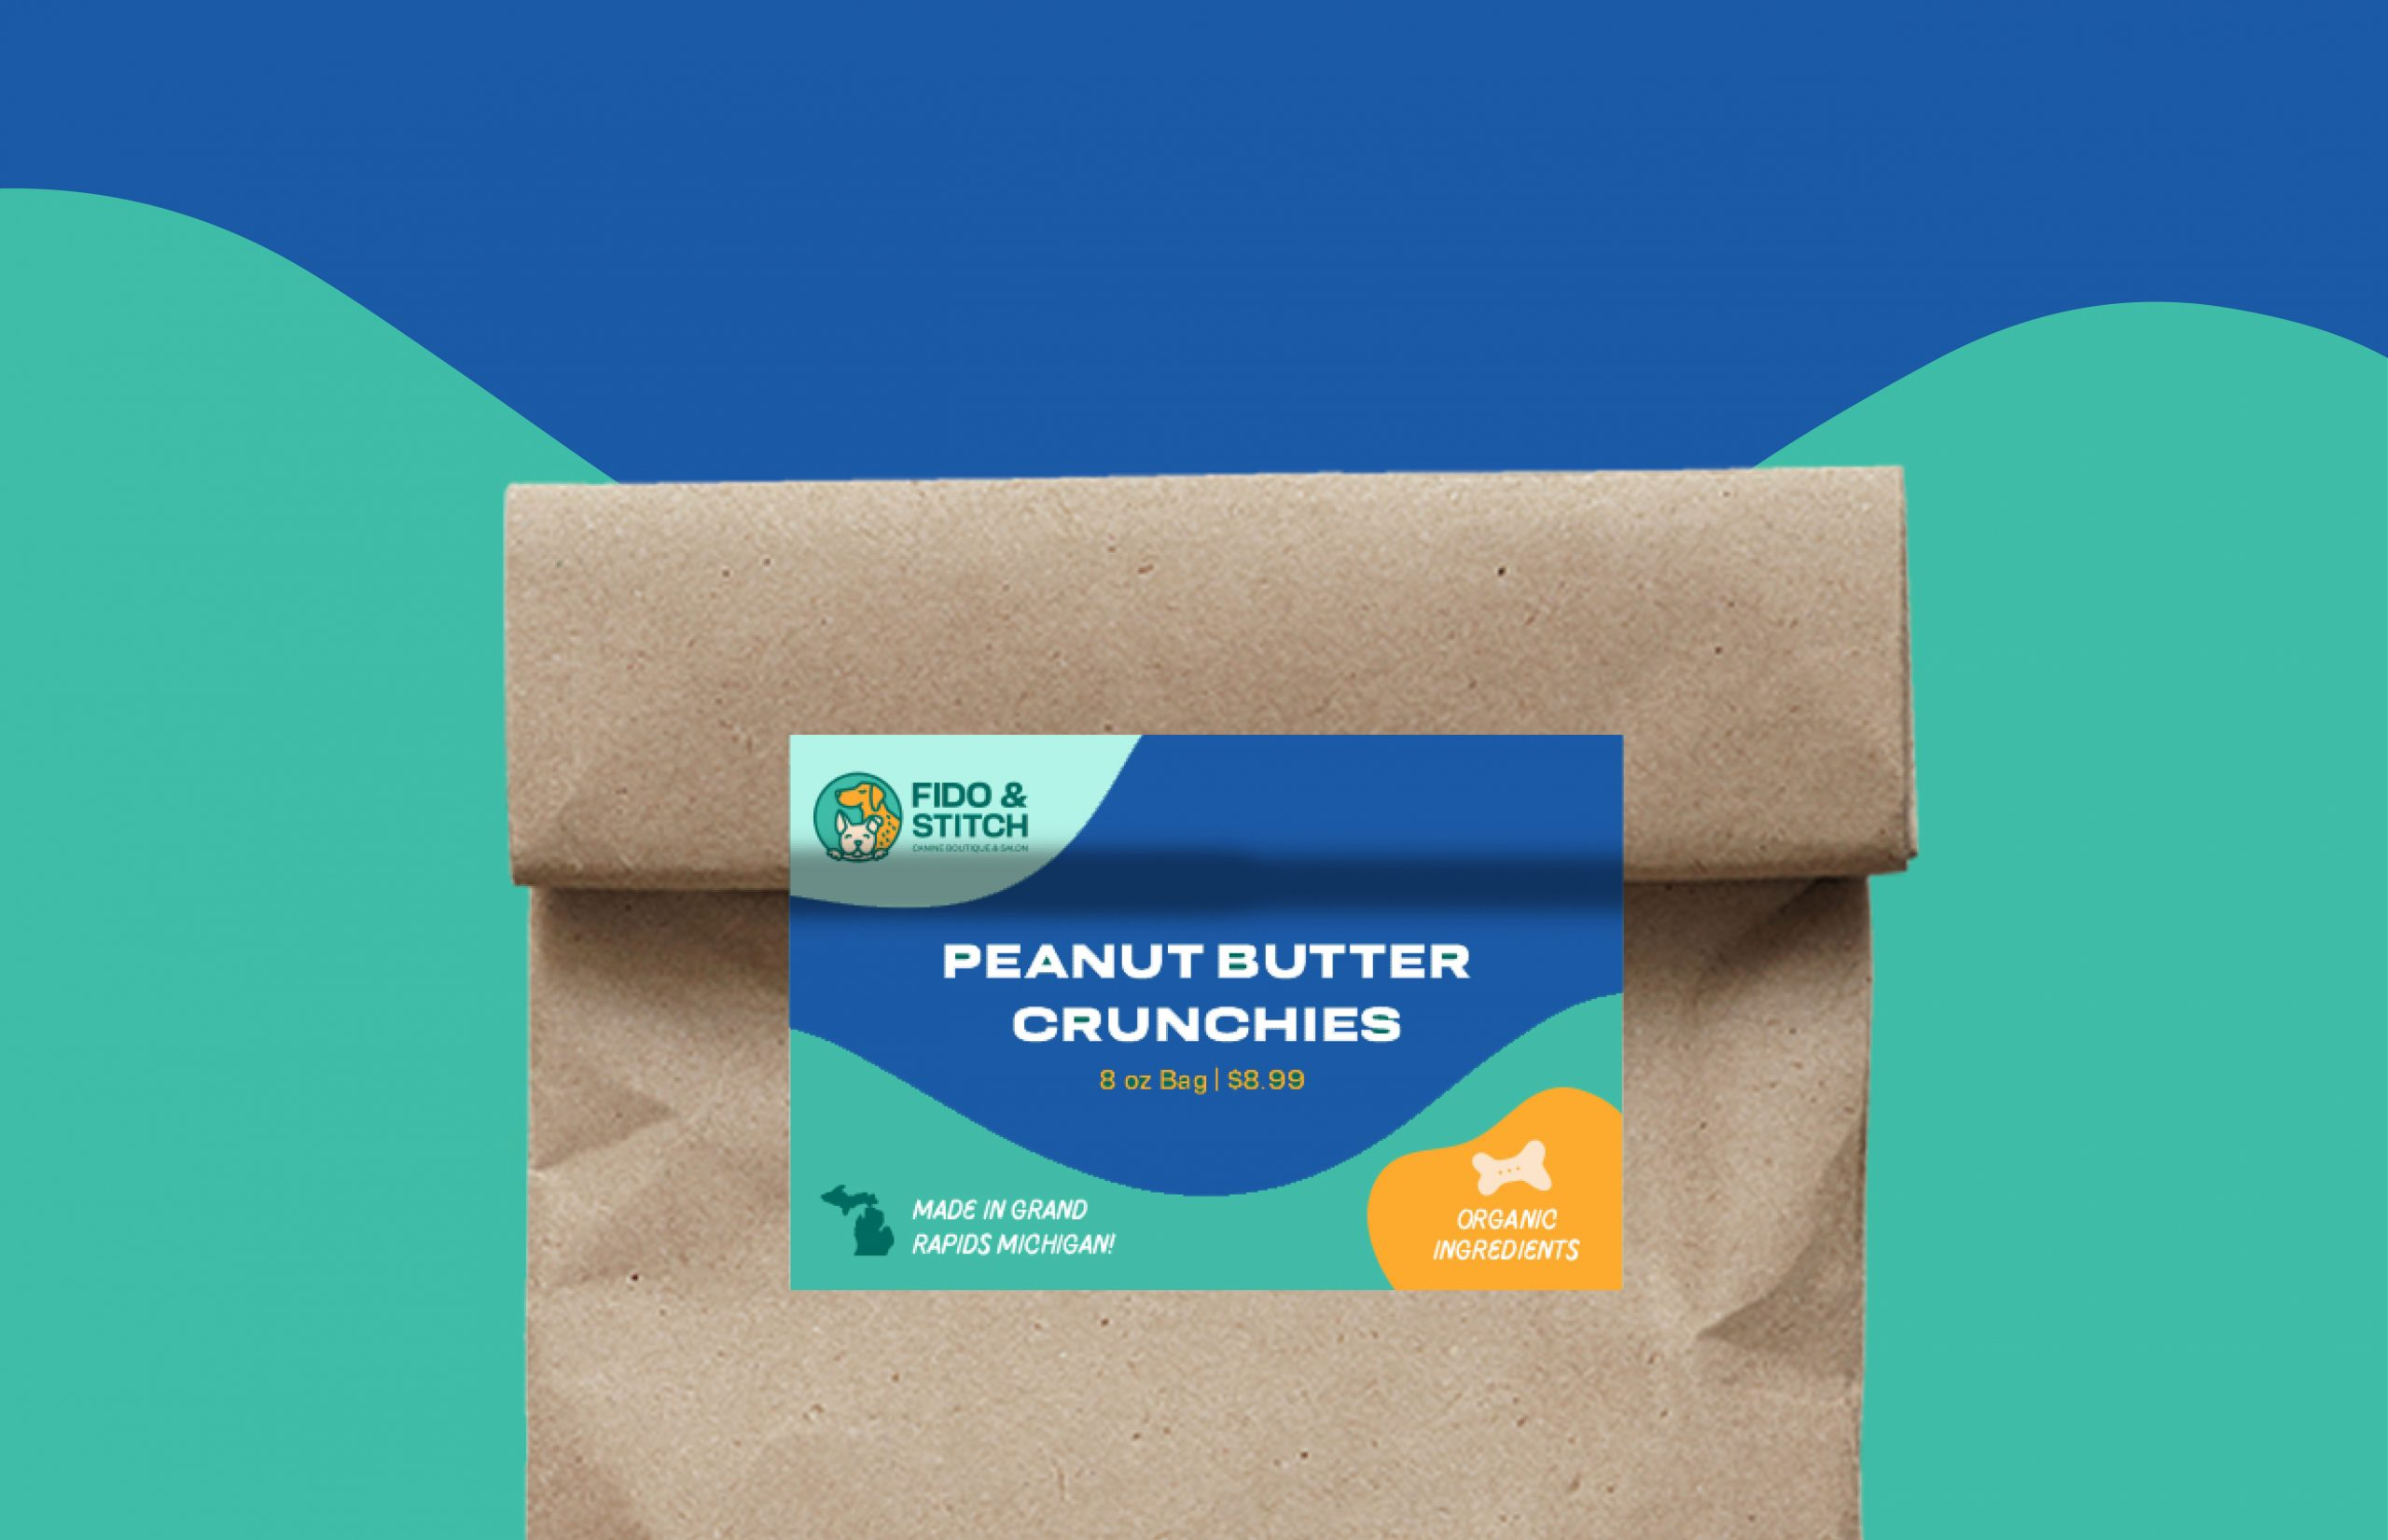 paper bag with peanut butter crunchies label